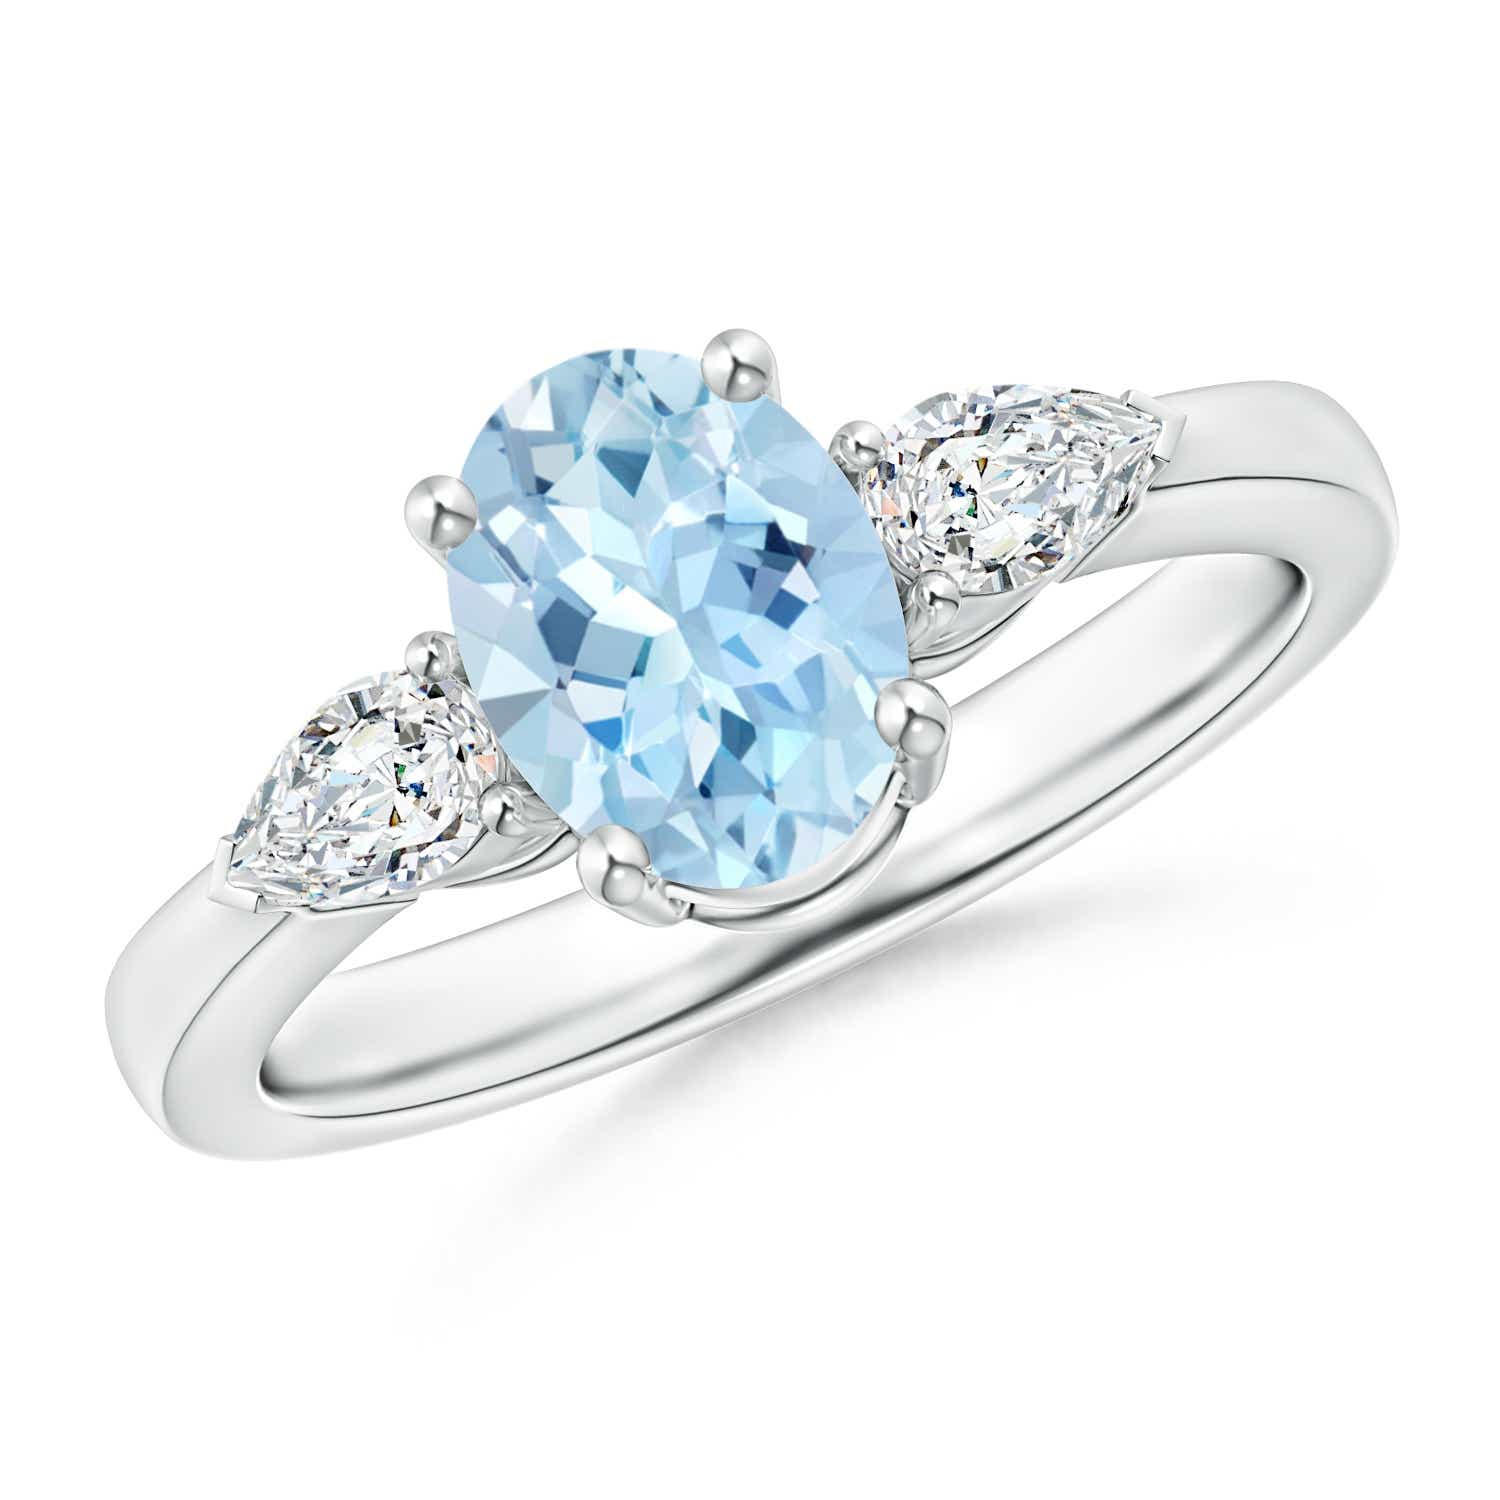 Four Prong Three Stone Oval Aquamarine and Diamond Ring - Angara.com